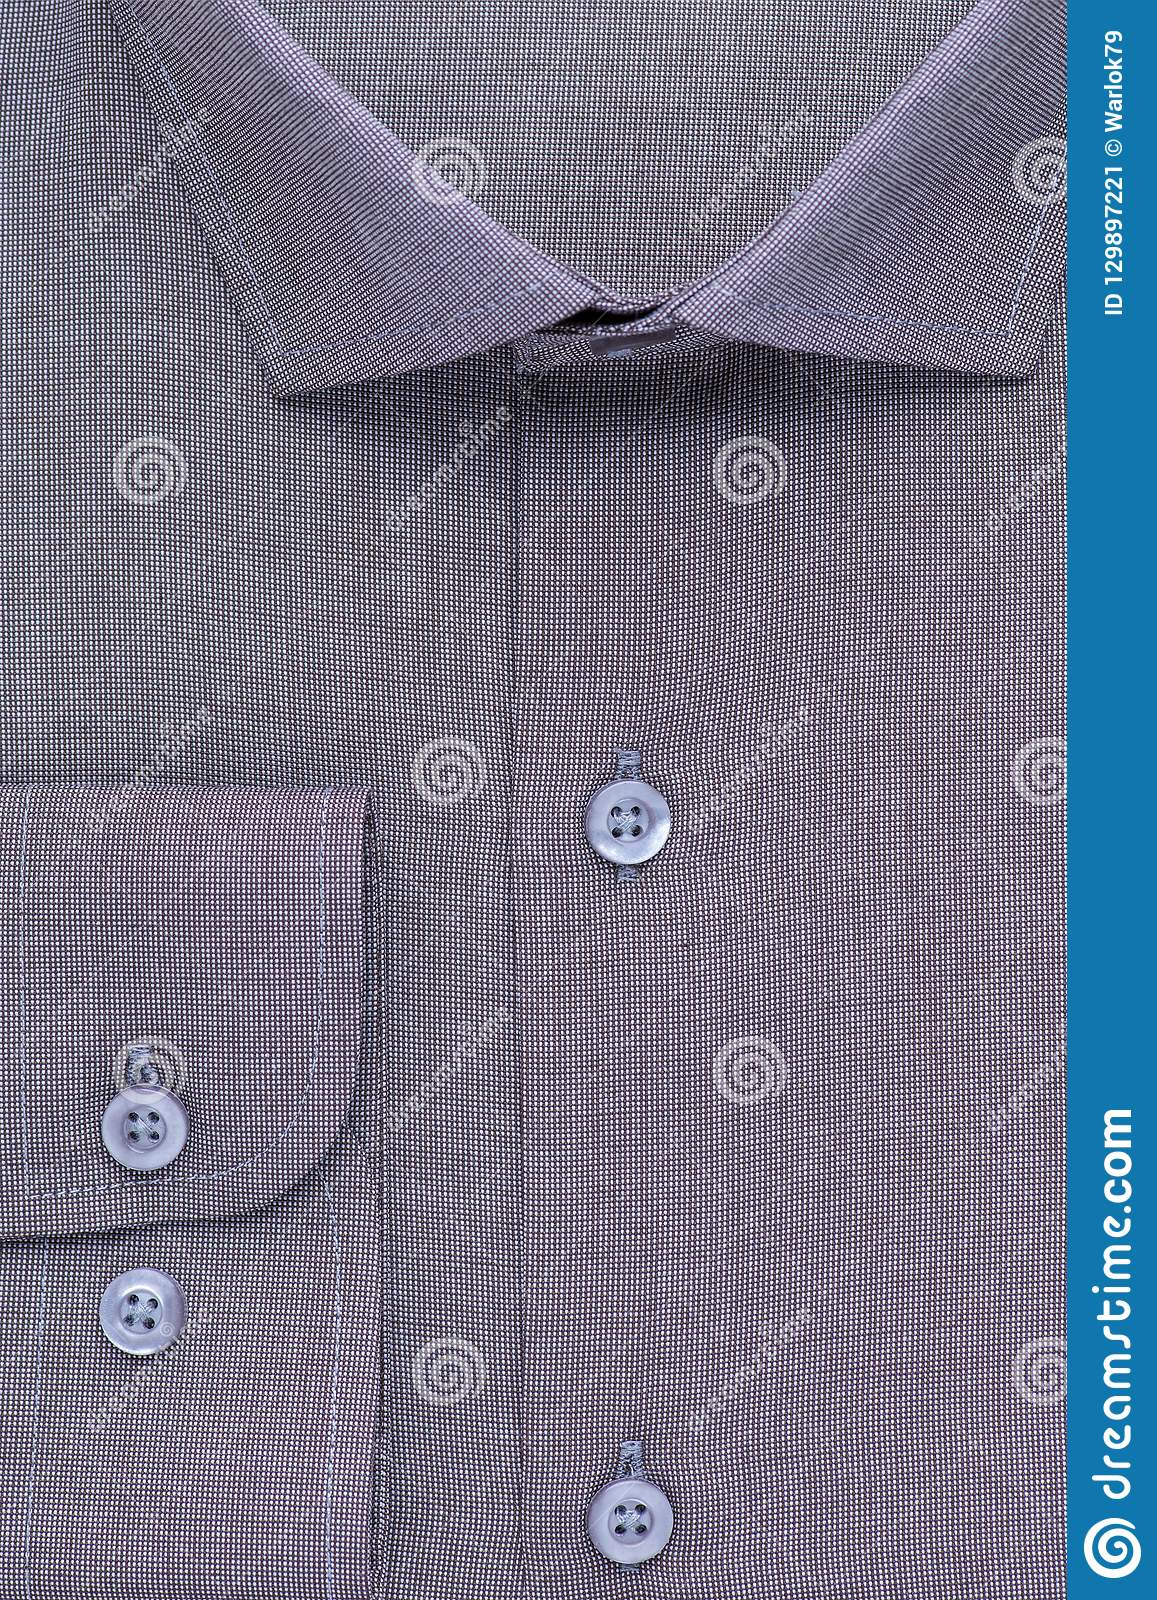 Shirt Top View Stock Image Image Of Clean People 129897221